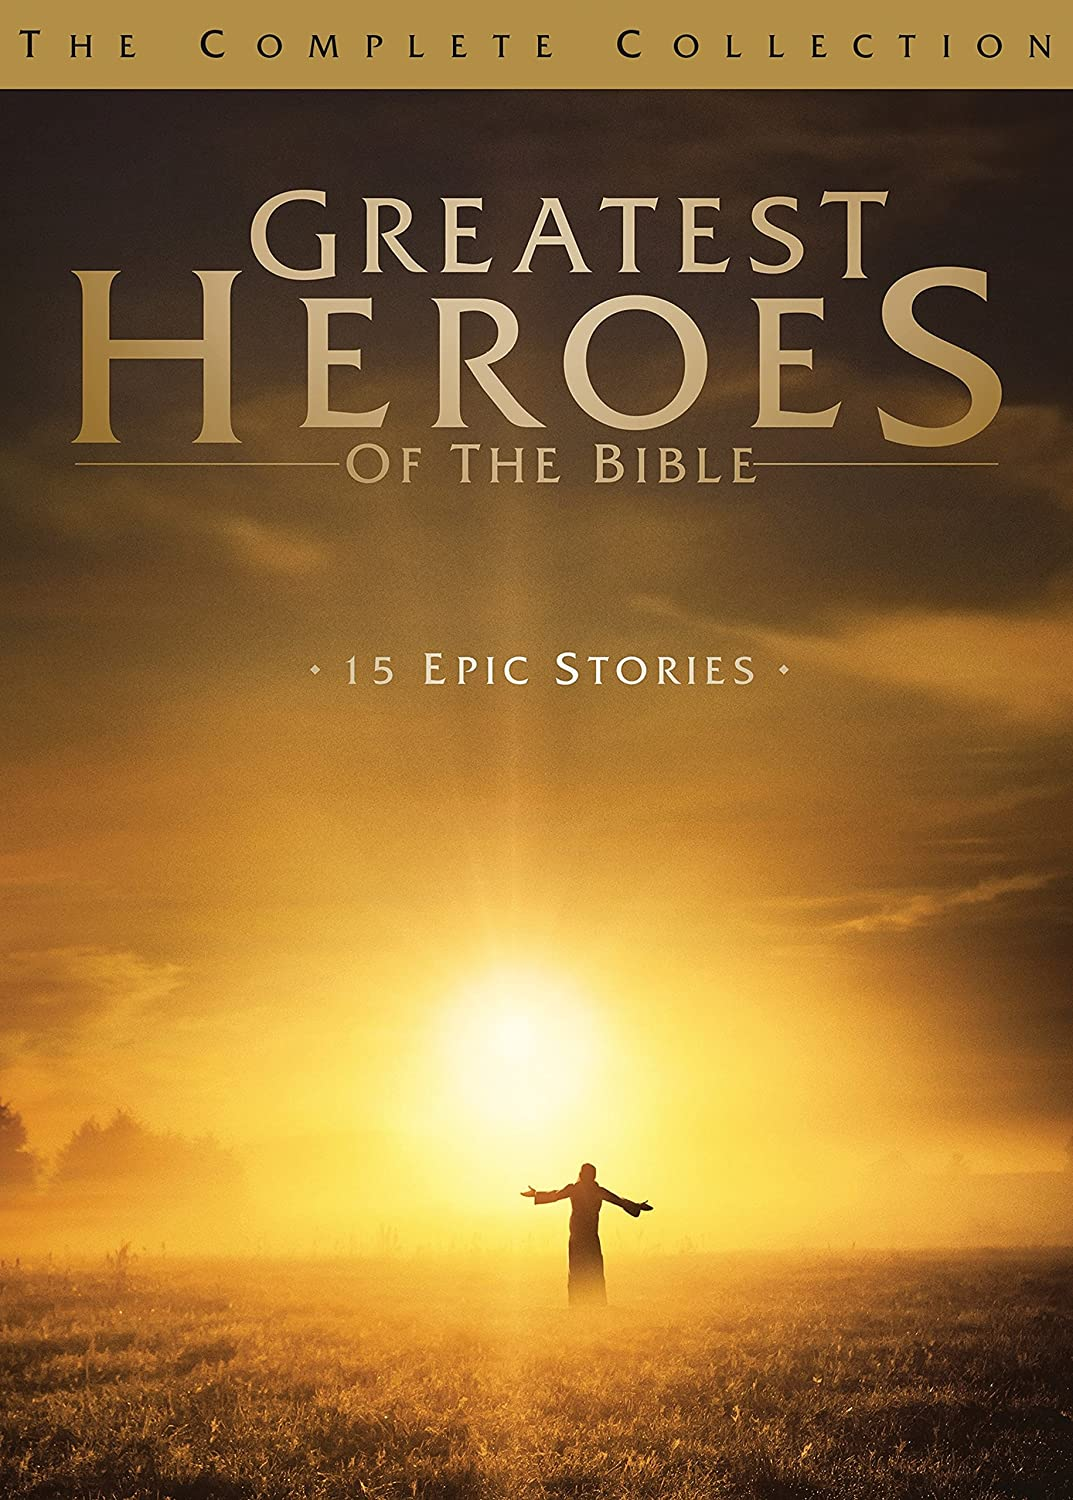 amazon com greatest heroes of the bible the complete collection